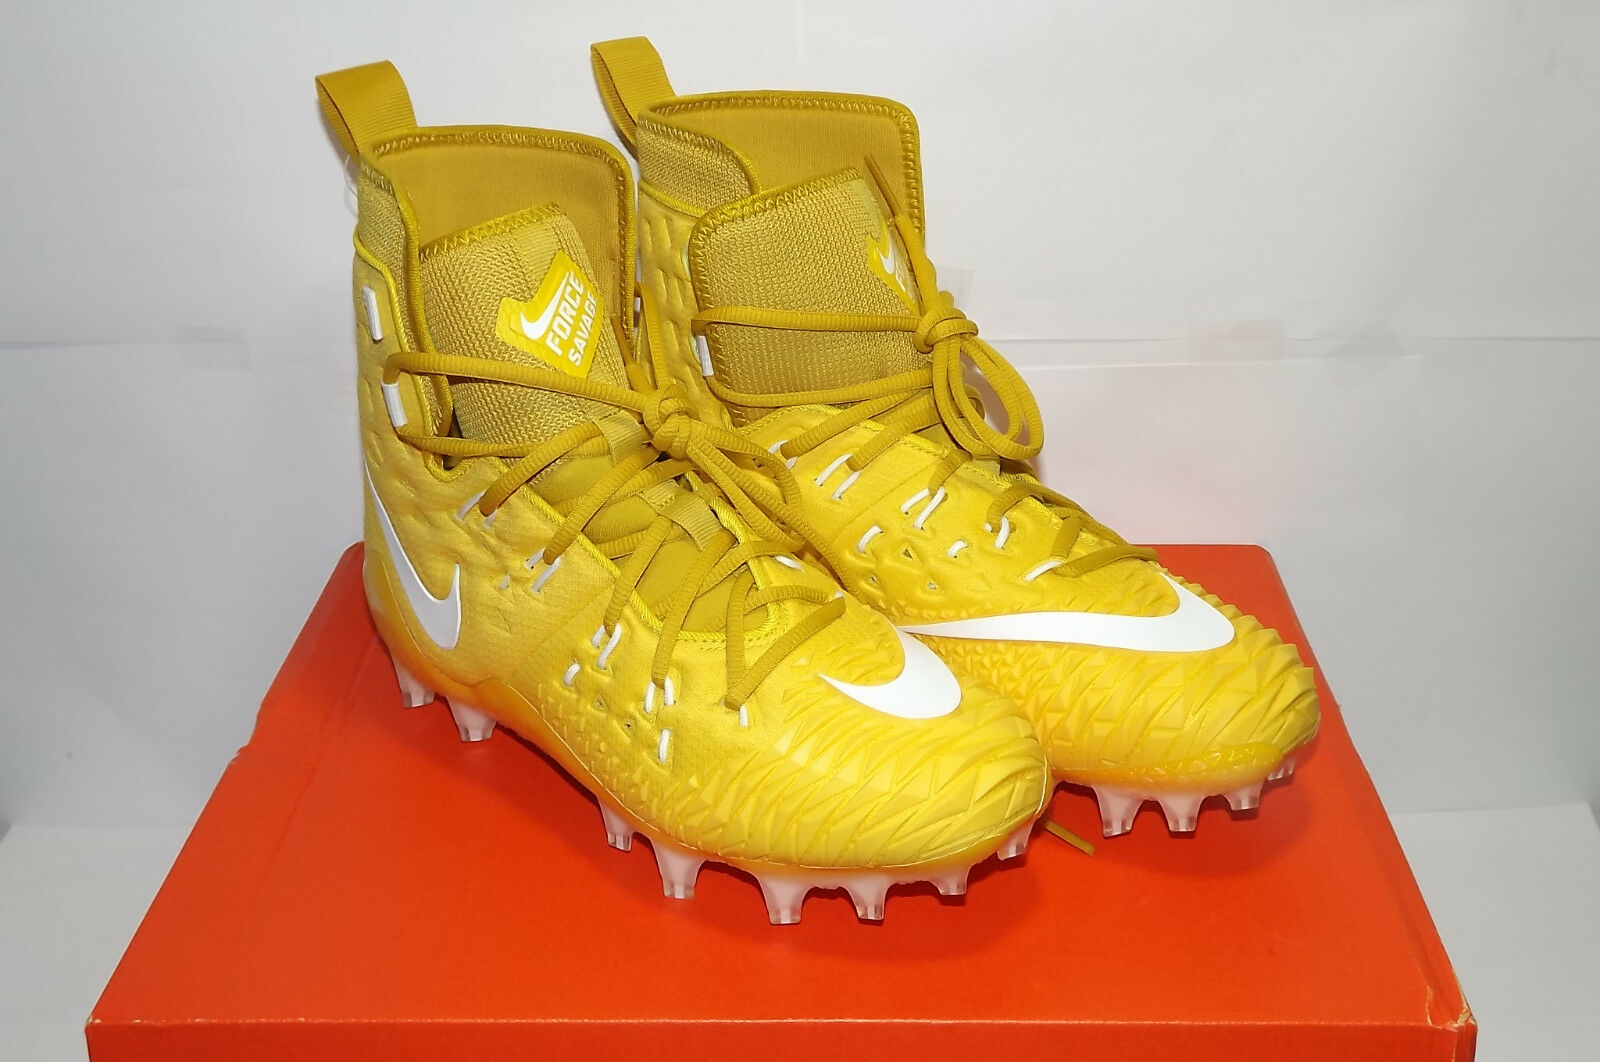 MEN'S NIKE FORCE SAVAGE ELITE TD 857063 717 FOOTBALL CLEATS YELLOW WHITE SIZE 11